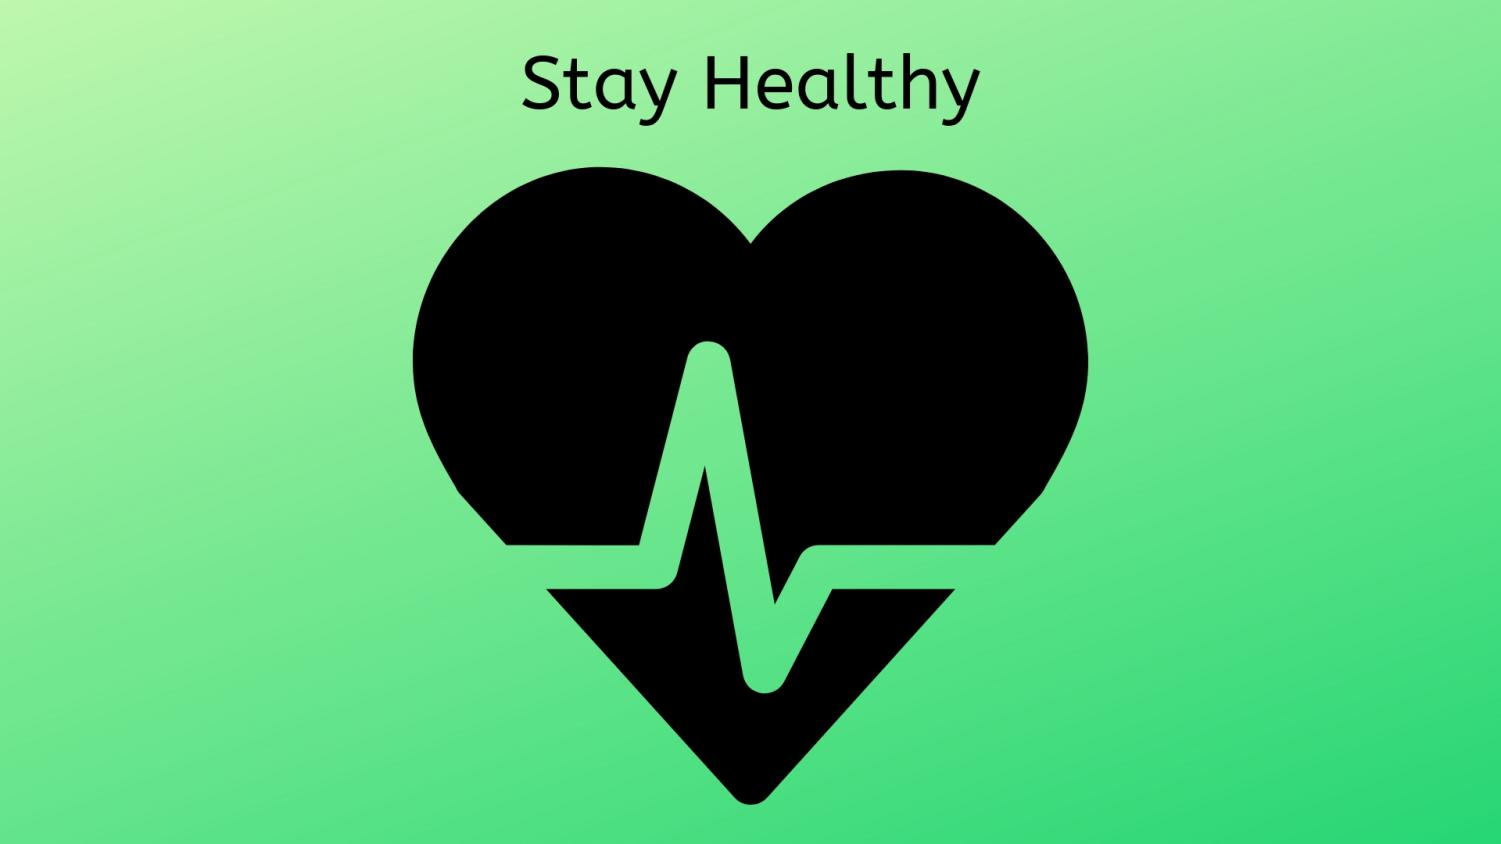 Stay+healthy+-+This+doesn%E2%80%99t+mean+going+to+the+gym+twice+a+day+or+going+on+a+strict+diet%2C+START+SMALL%21+Begin+your+mornings+with+a+glass+of+water+and+a+nutritious+breakfast%2C+for+example%2C+make+yourself+an+egg+or+some+oatmeal%2C+you%E2%80%99ll+have+more+energy+and+stay+satisfied+until+lunch.+